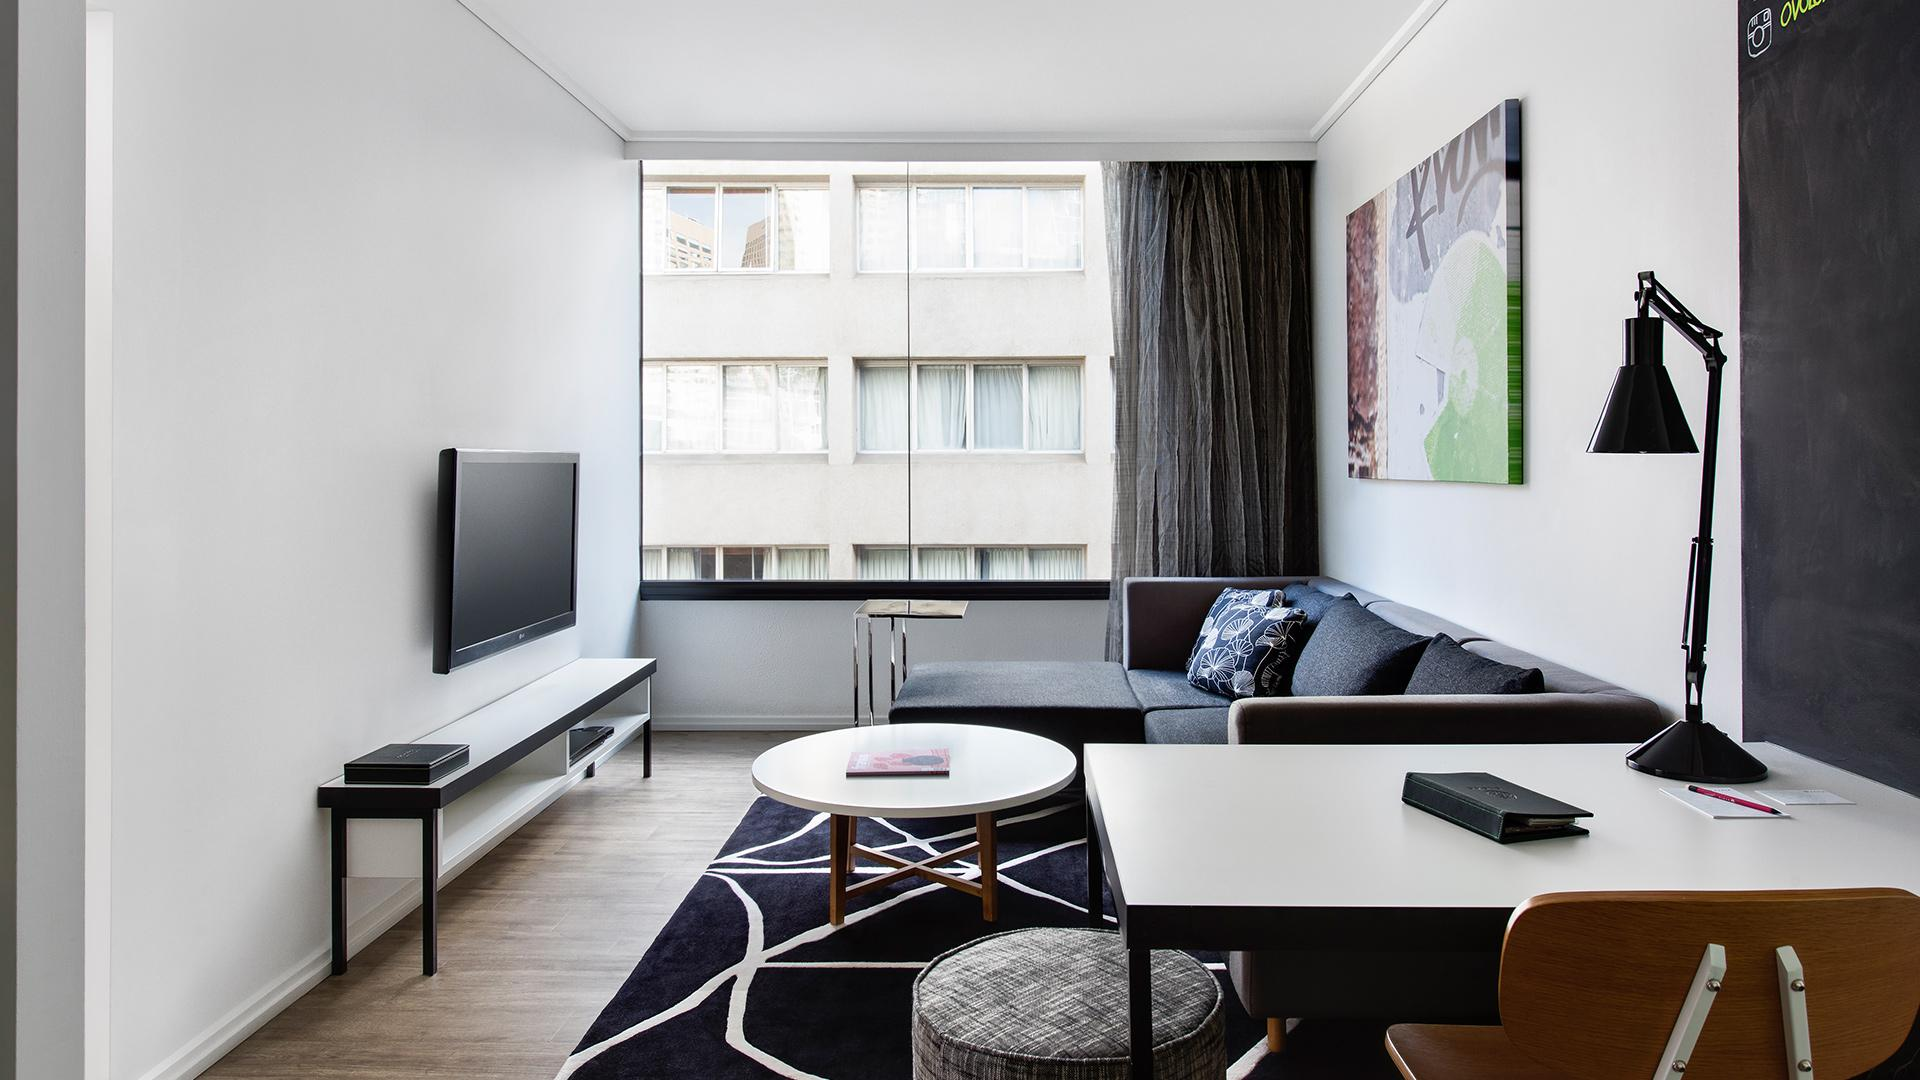 One-Bedroom Suite image 1 at Ovolo Laneways by Melbourne City, Victoria, Australia